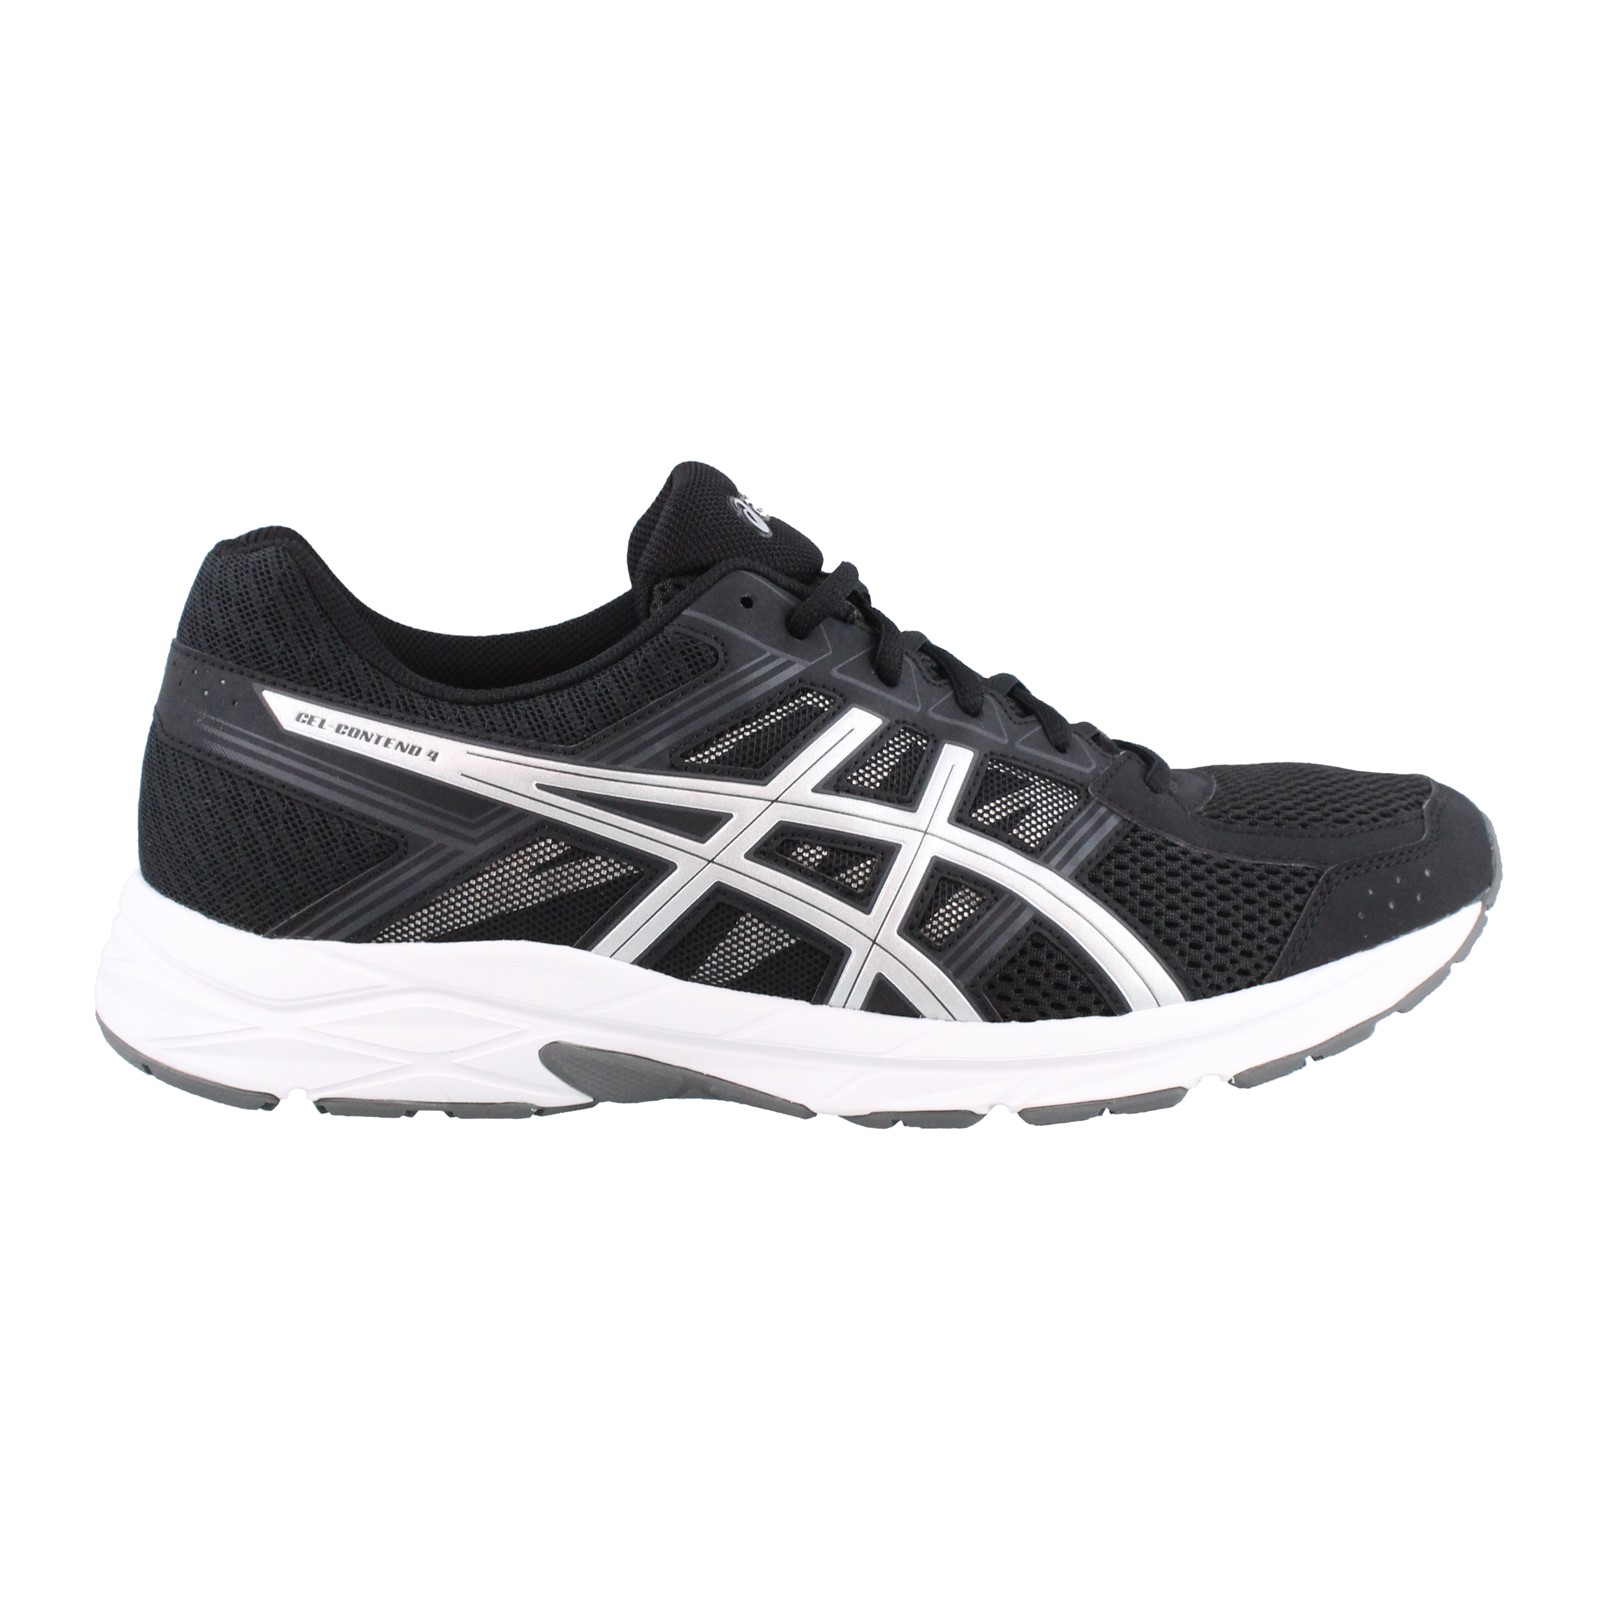 new concept 337ae f27a7 Men's Asics, Gel Contend 4 Running Shoes - Wide Width